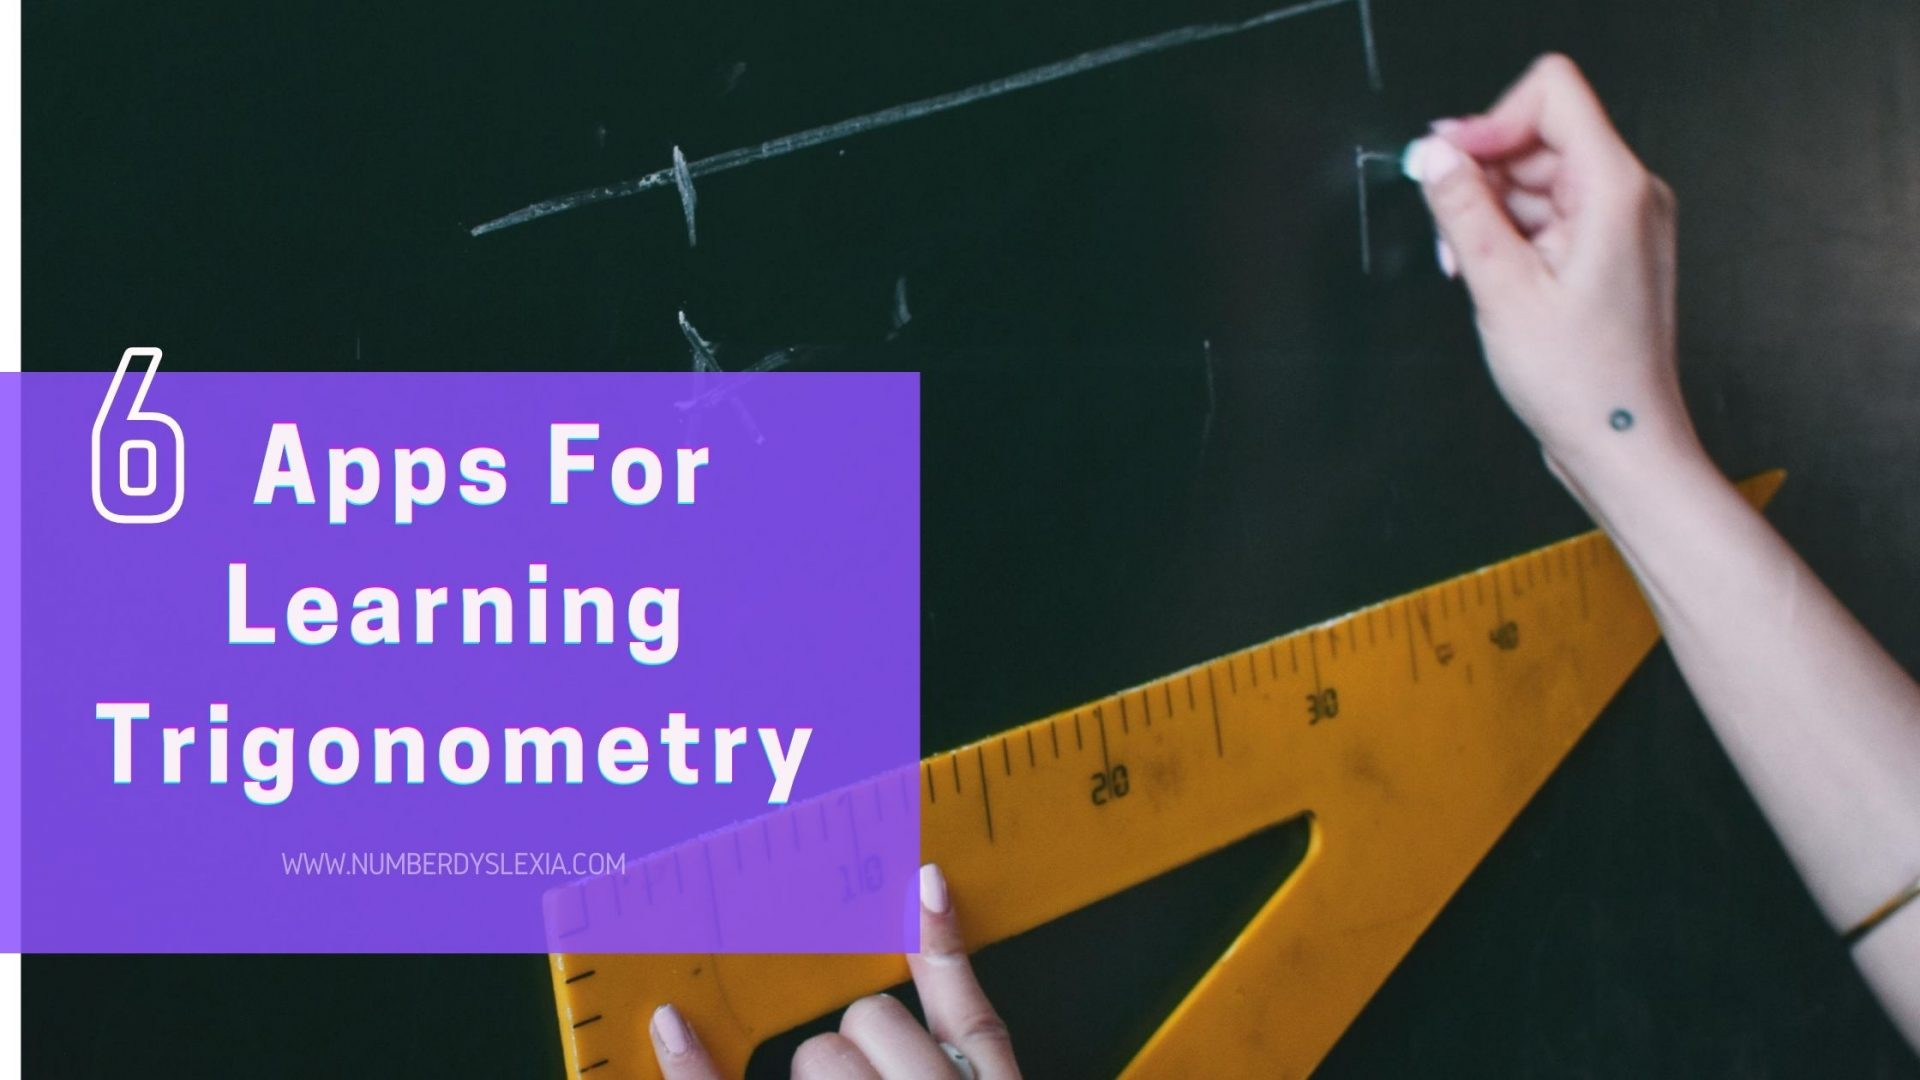 List of 6 helpful apps for trigonometry